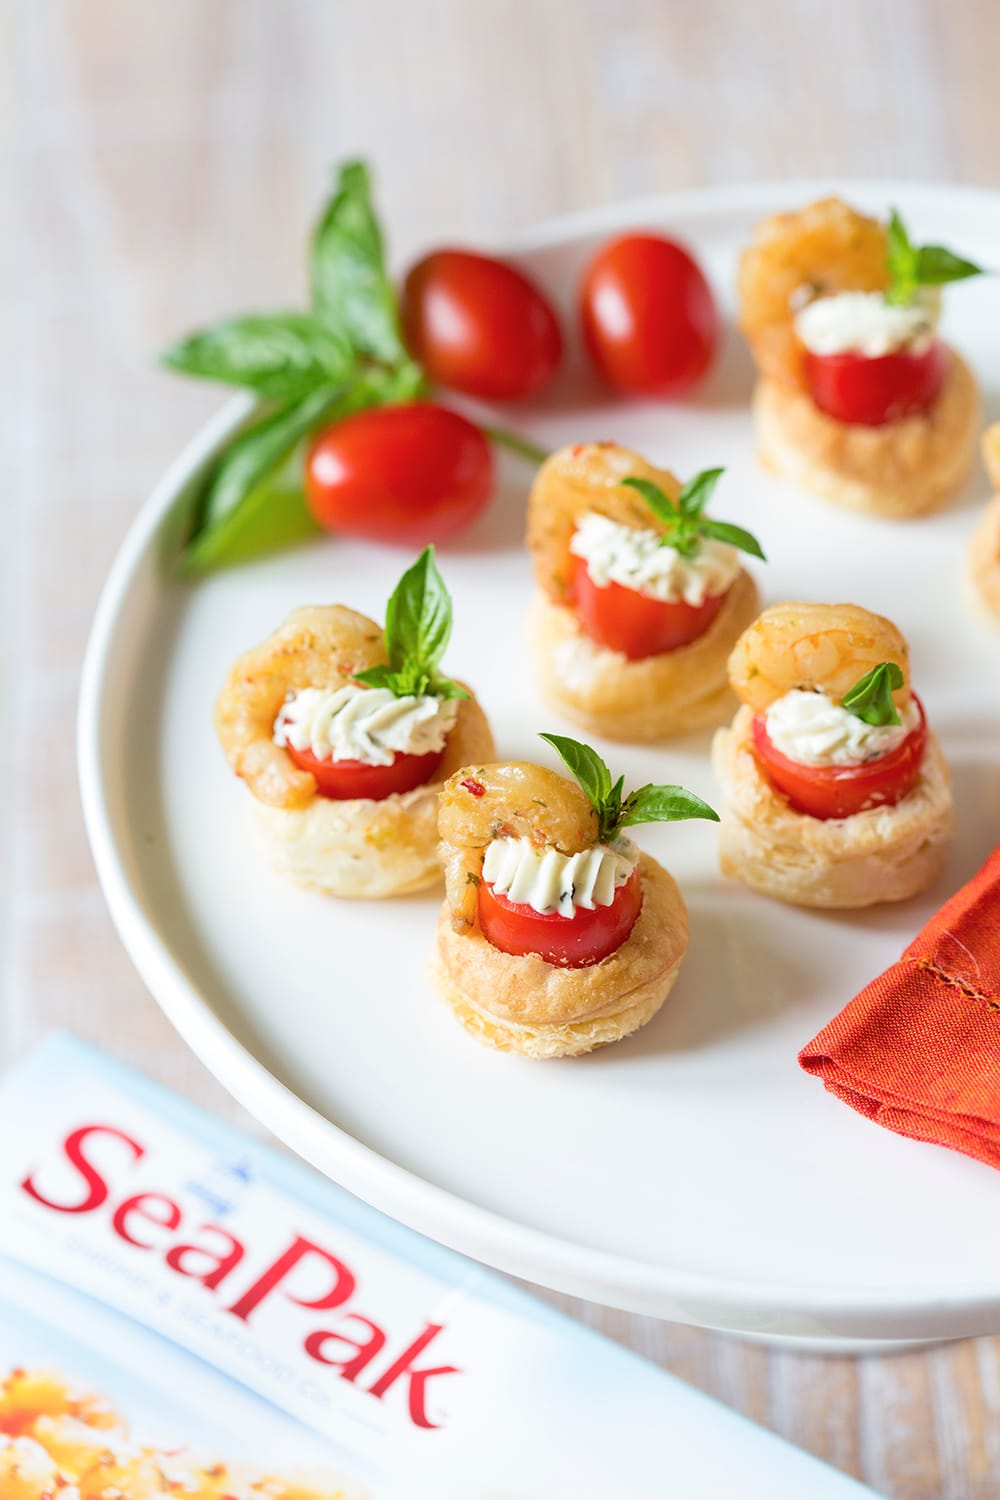 Shrimp & Tomato Pastry Tartlet - Party Appetizer